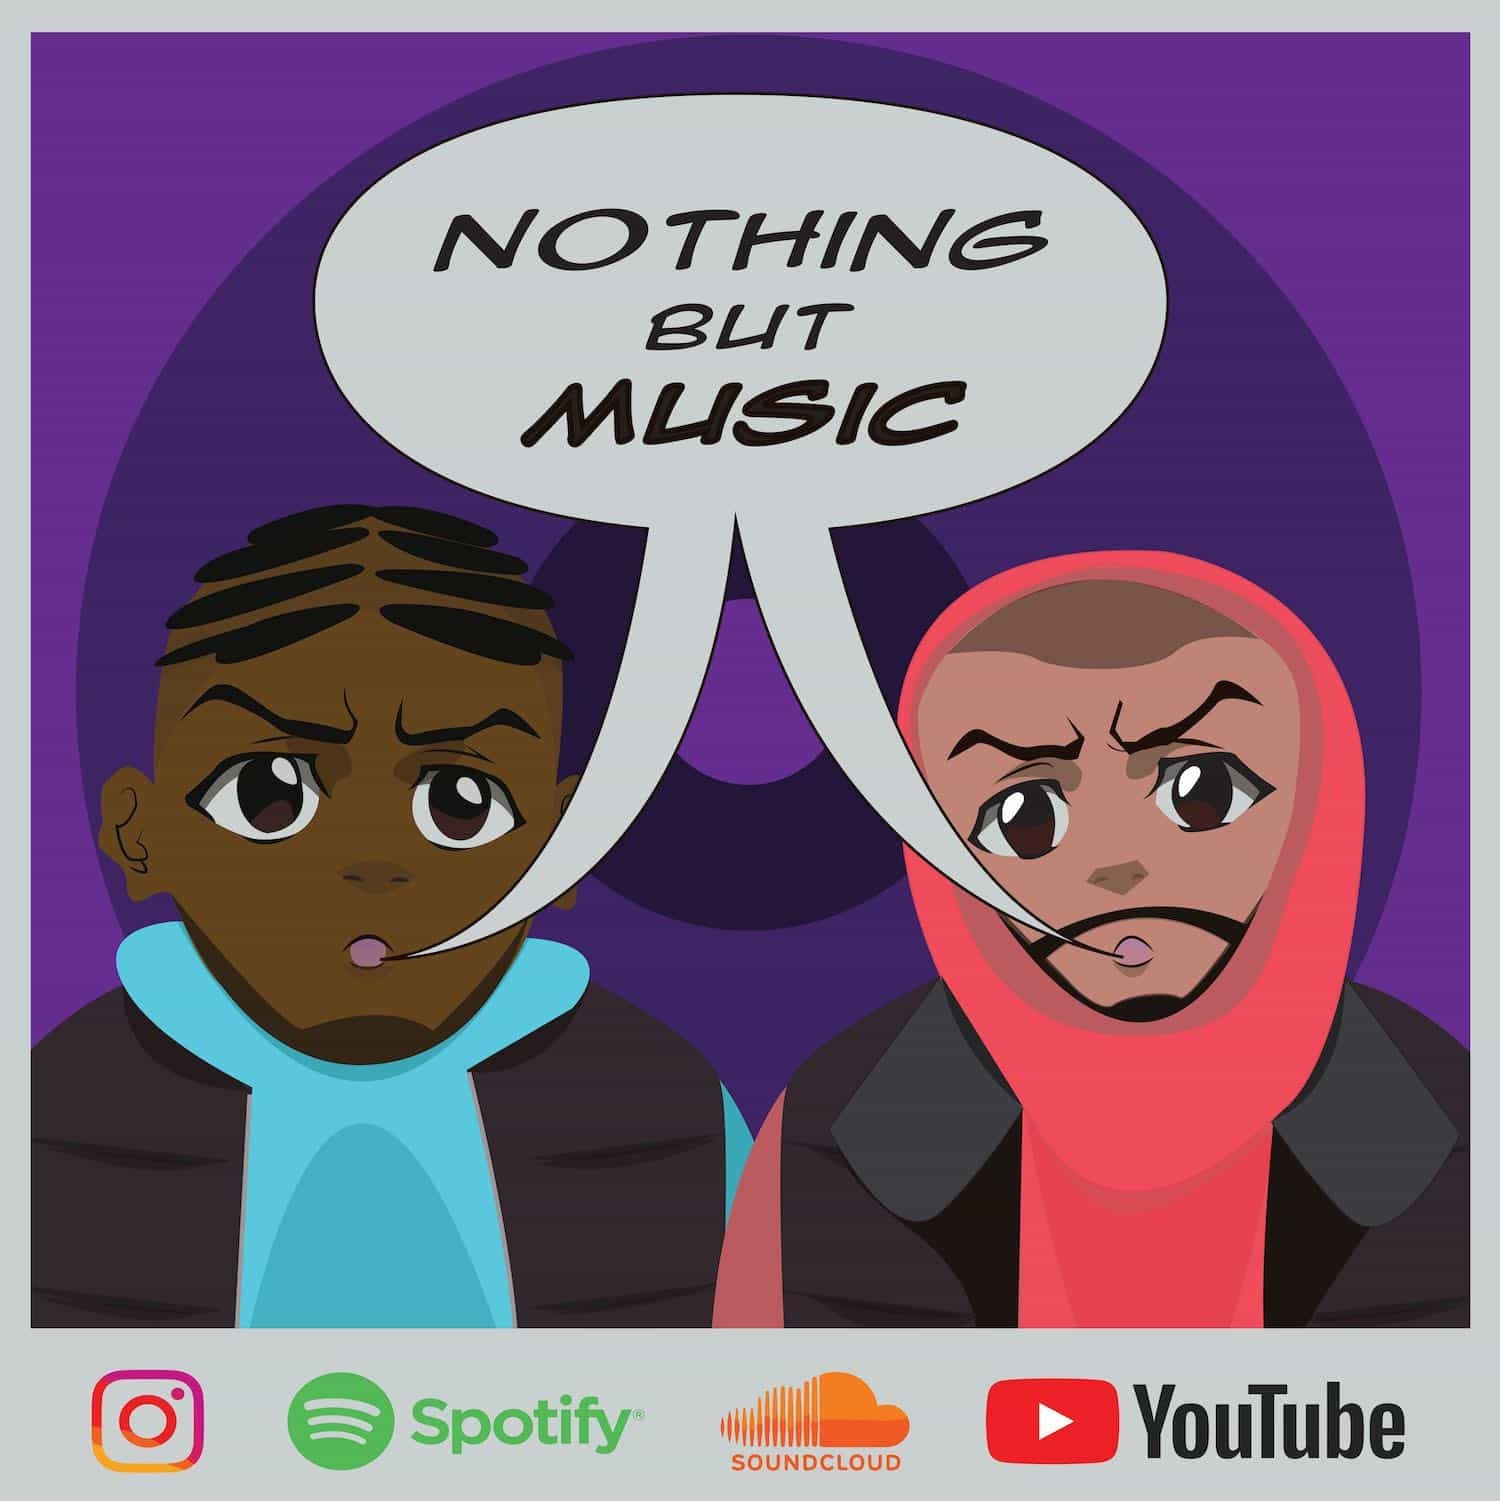 Podcast Editing Services, Nothing But Music Podcast